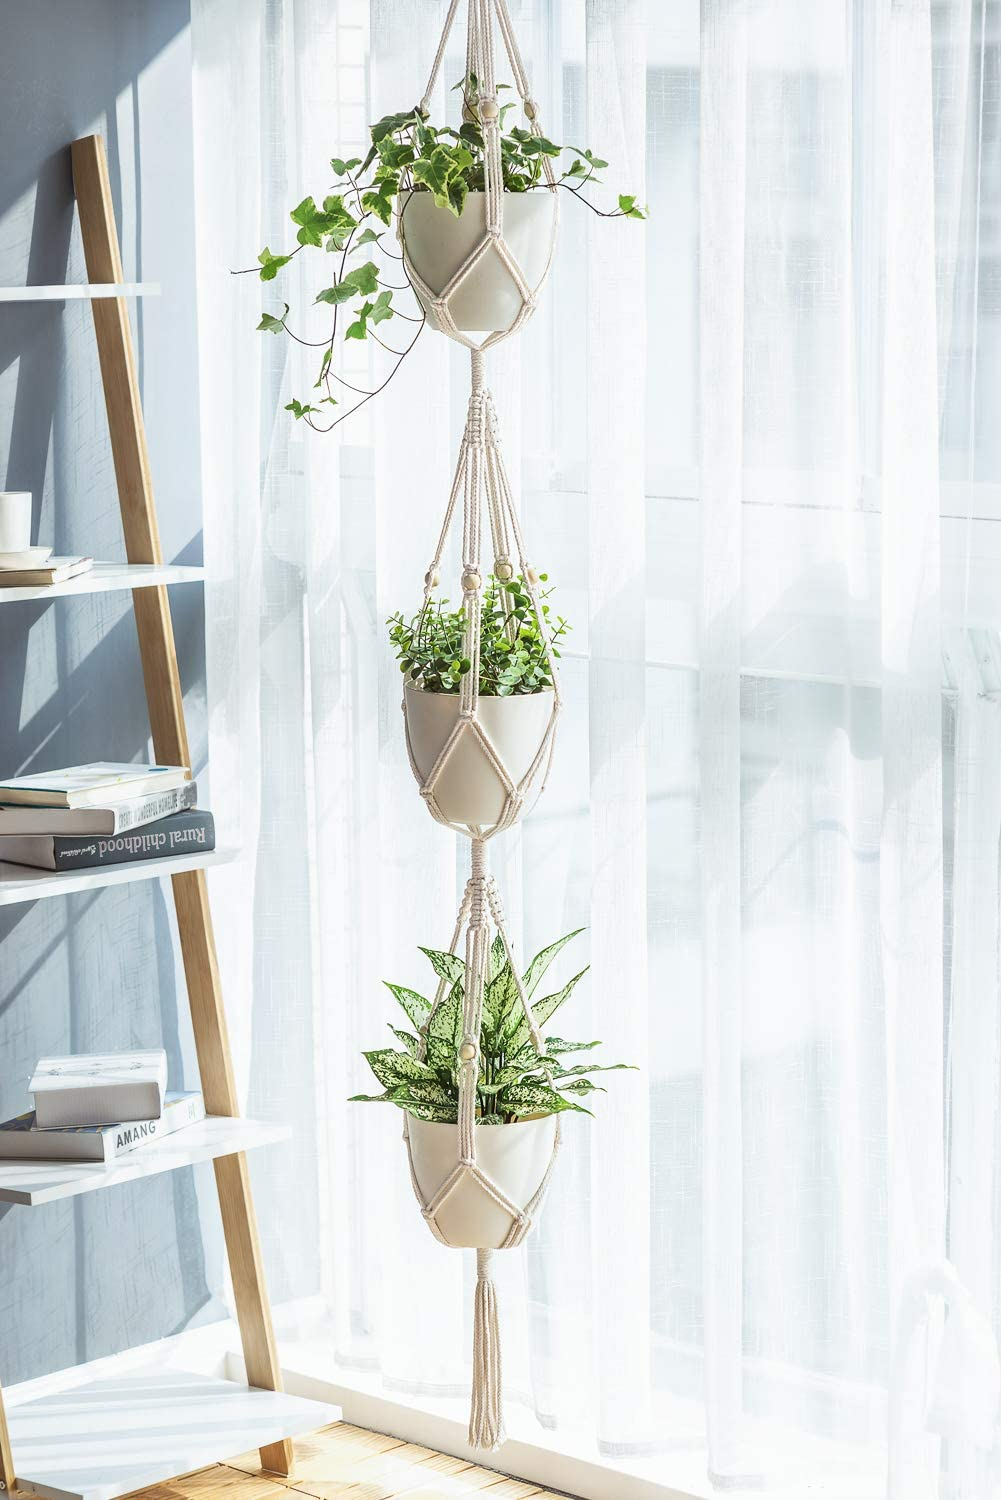 5-Pack Plant Hangers with 5 Hooks, Different Tiers, Handmade Cotton Rope